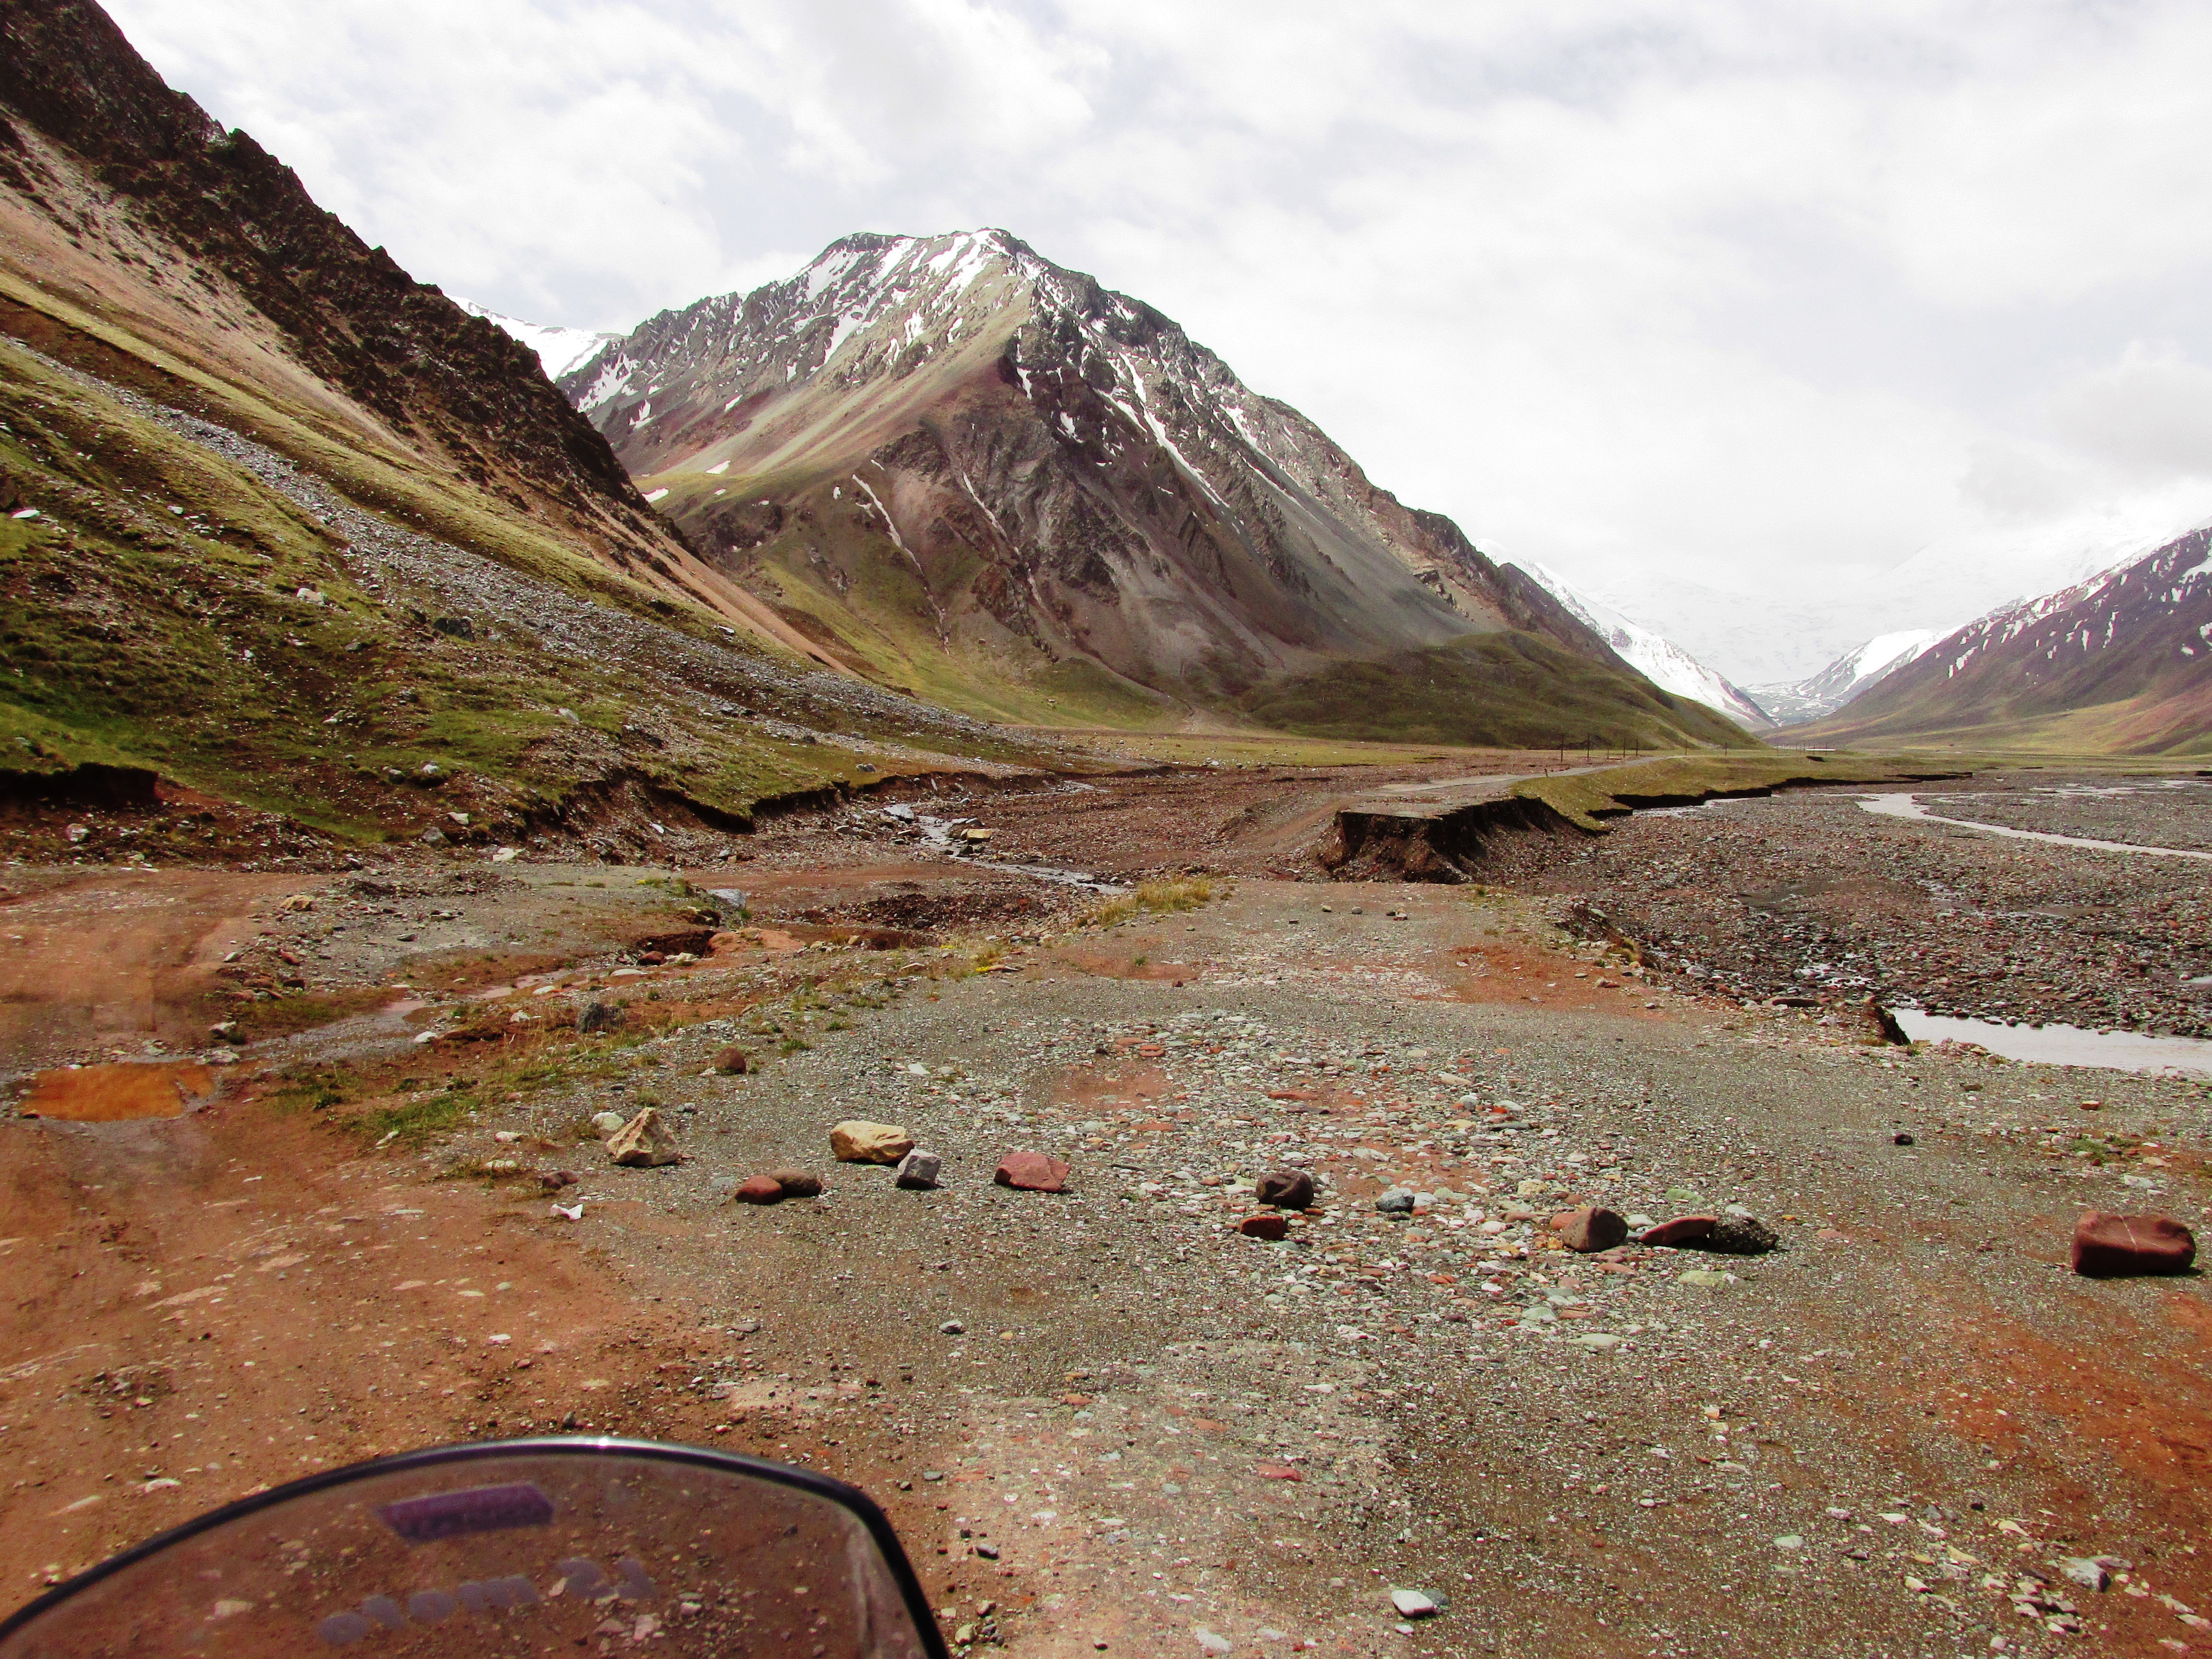 Silk Road Adventure 2014: trip to the Stans part 2